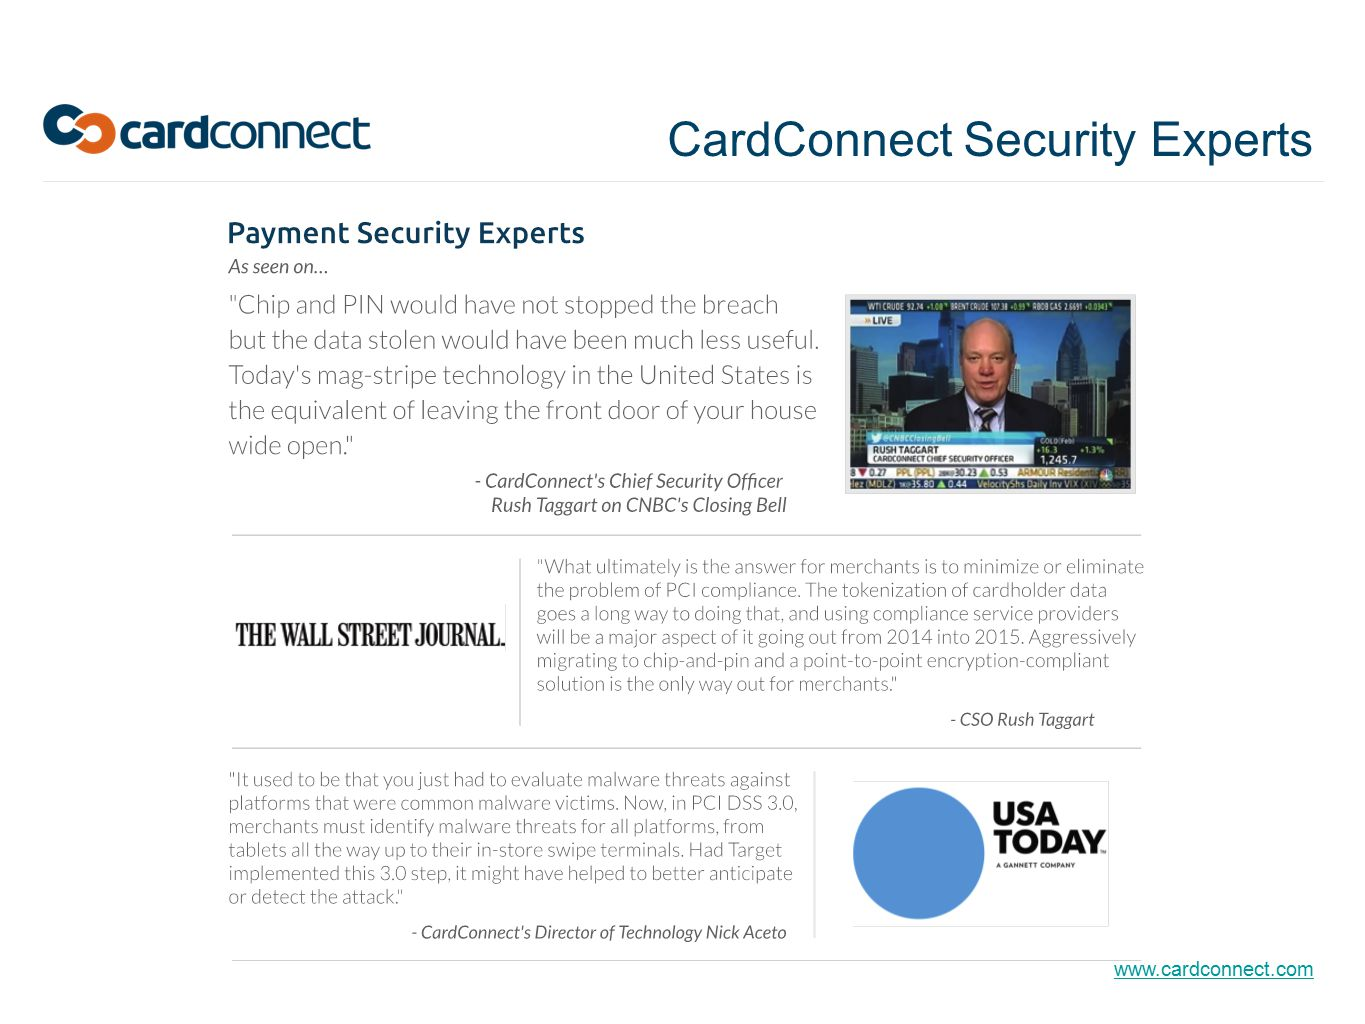 CardConnect Security Experts